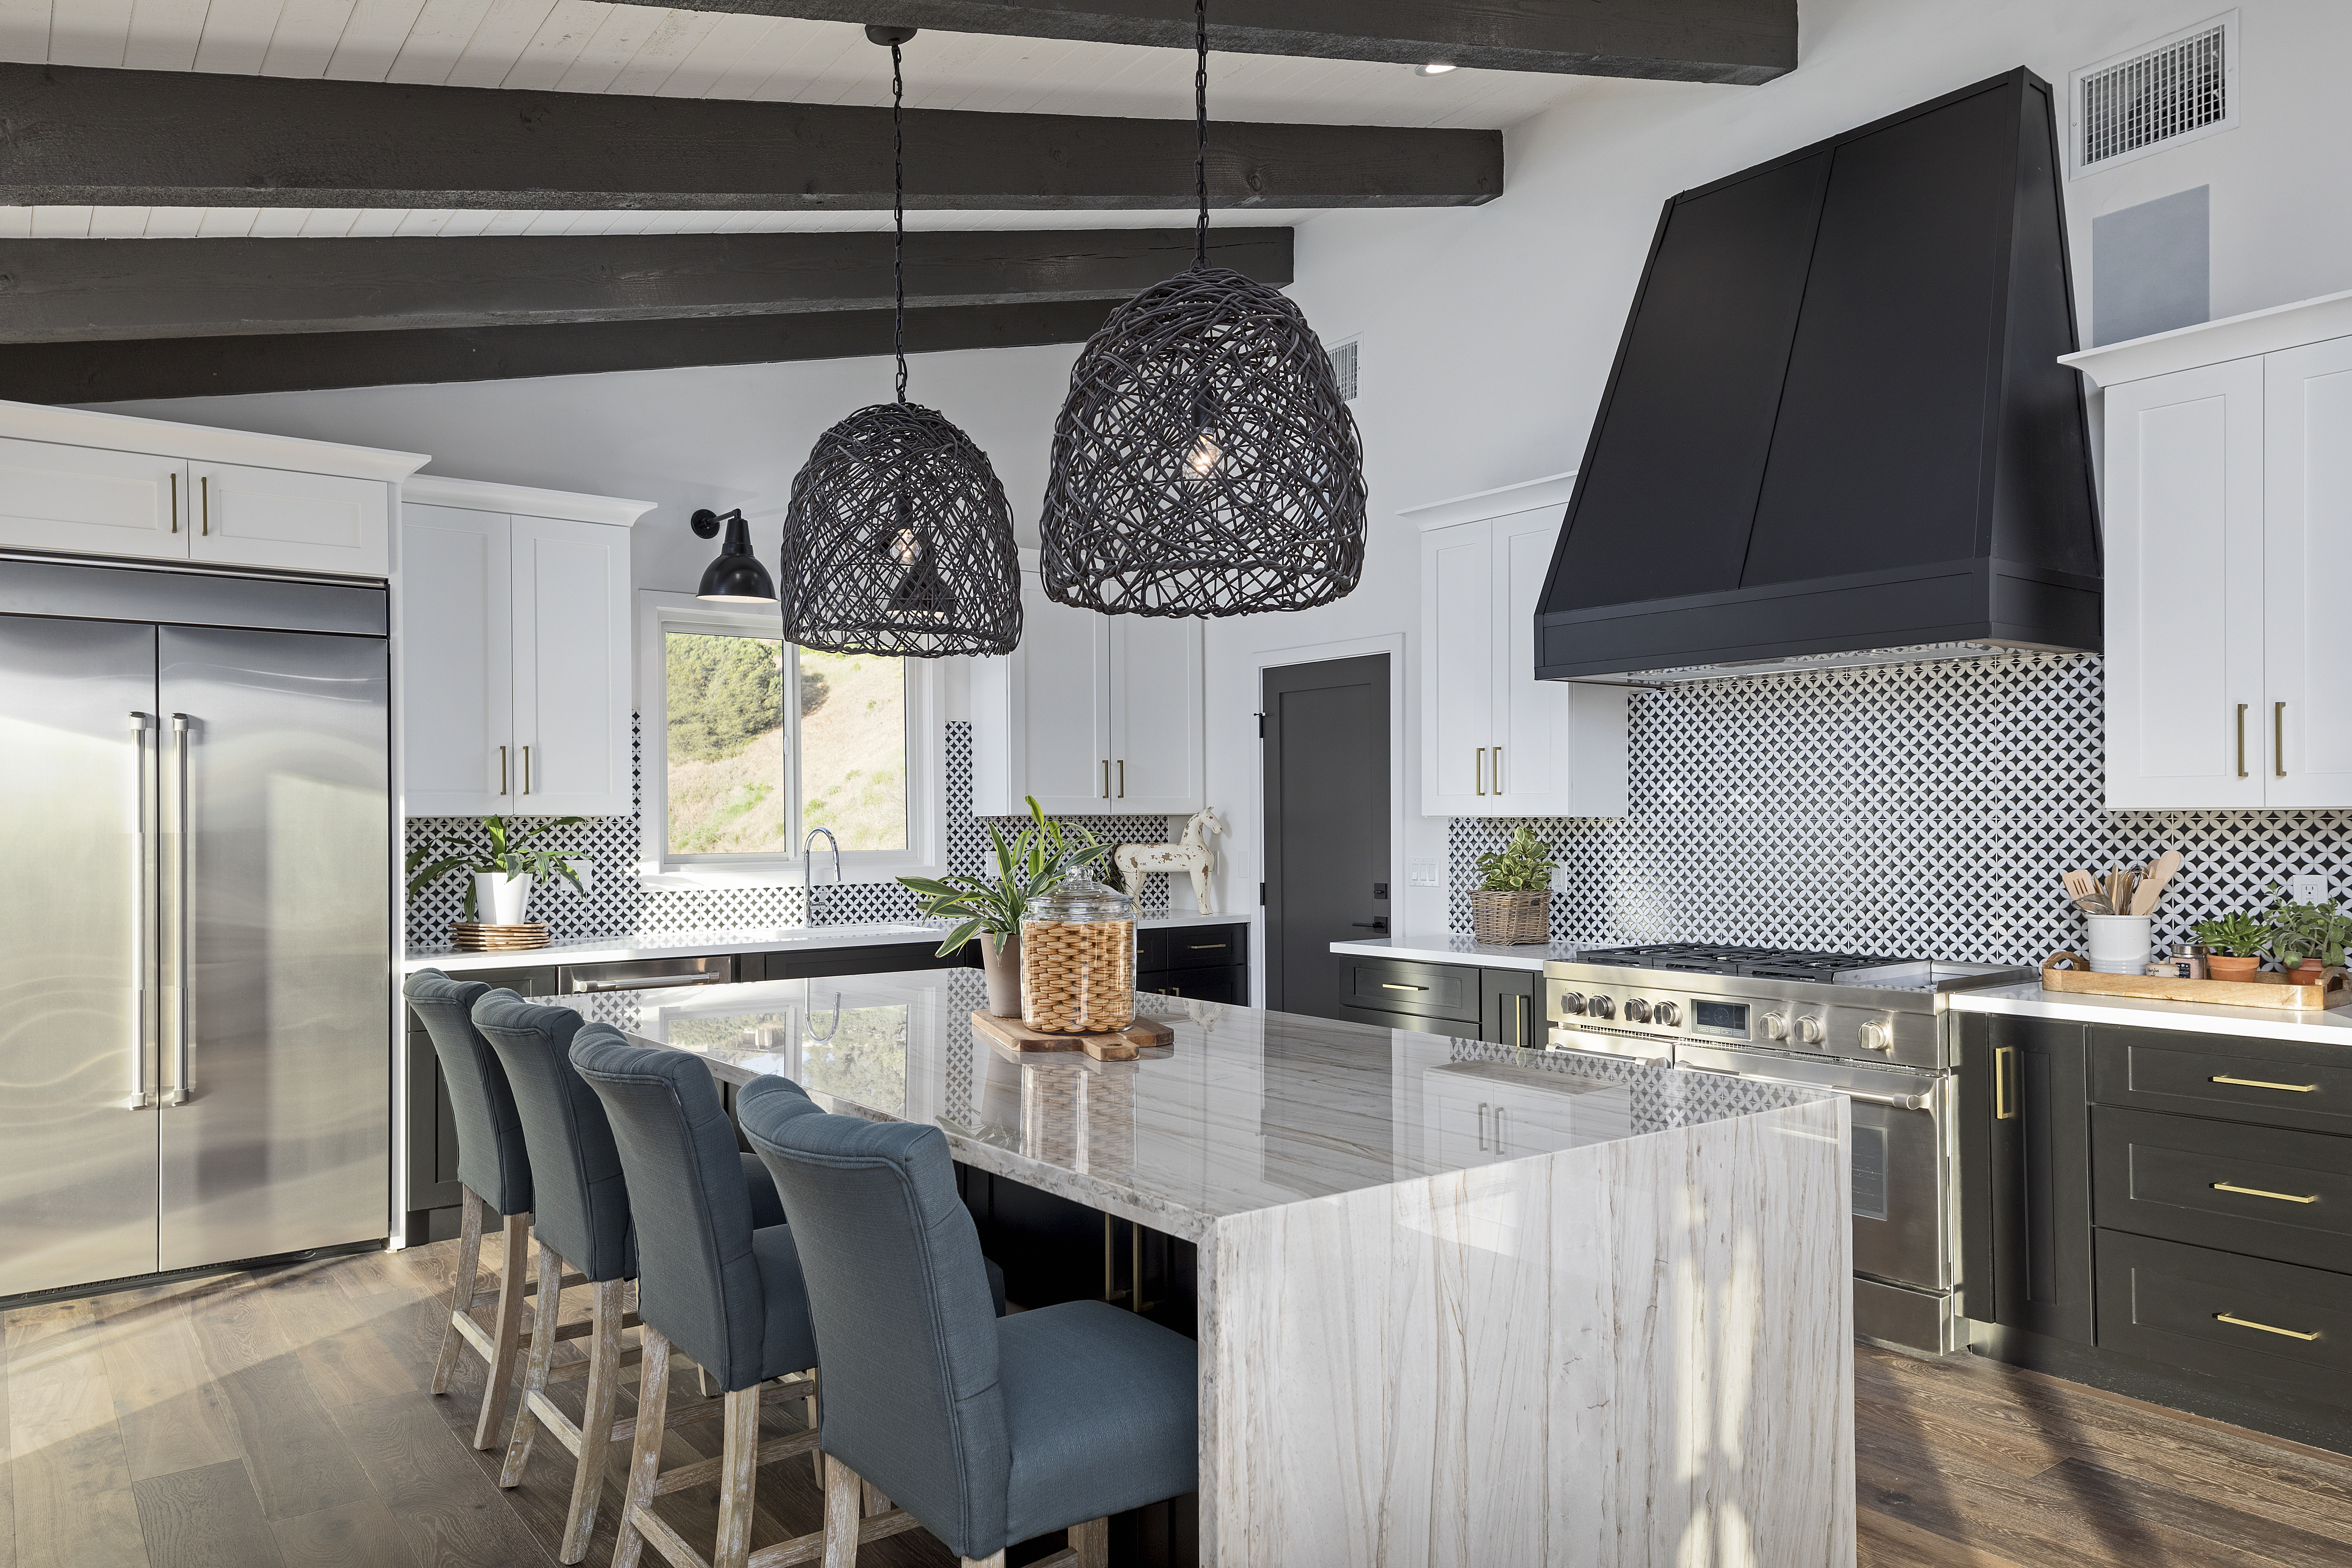 How to Fix Dull Granite Countertops | Home Guides | SF Gate